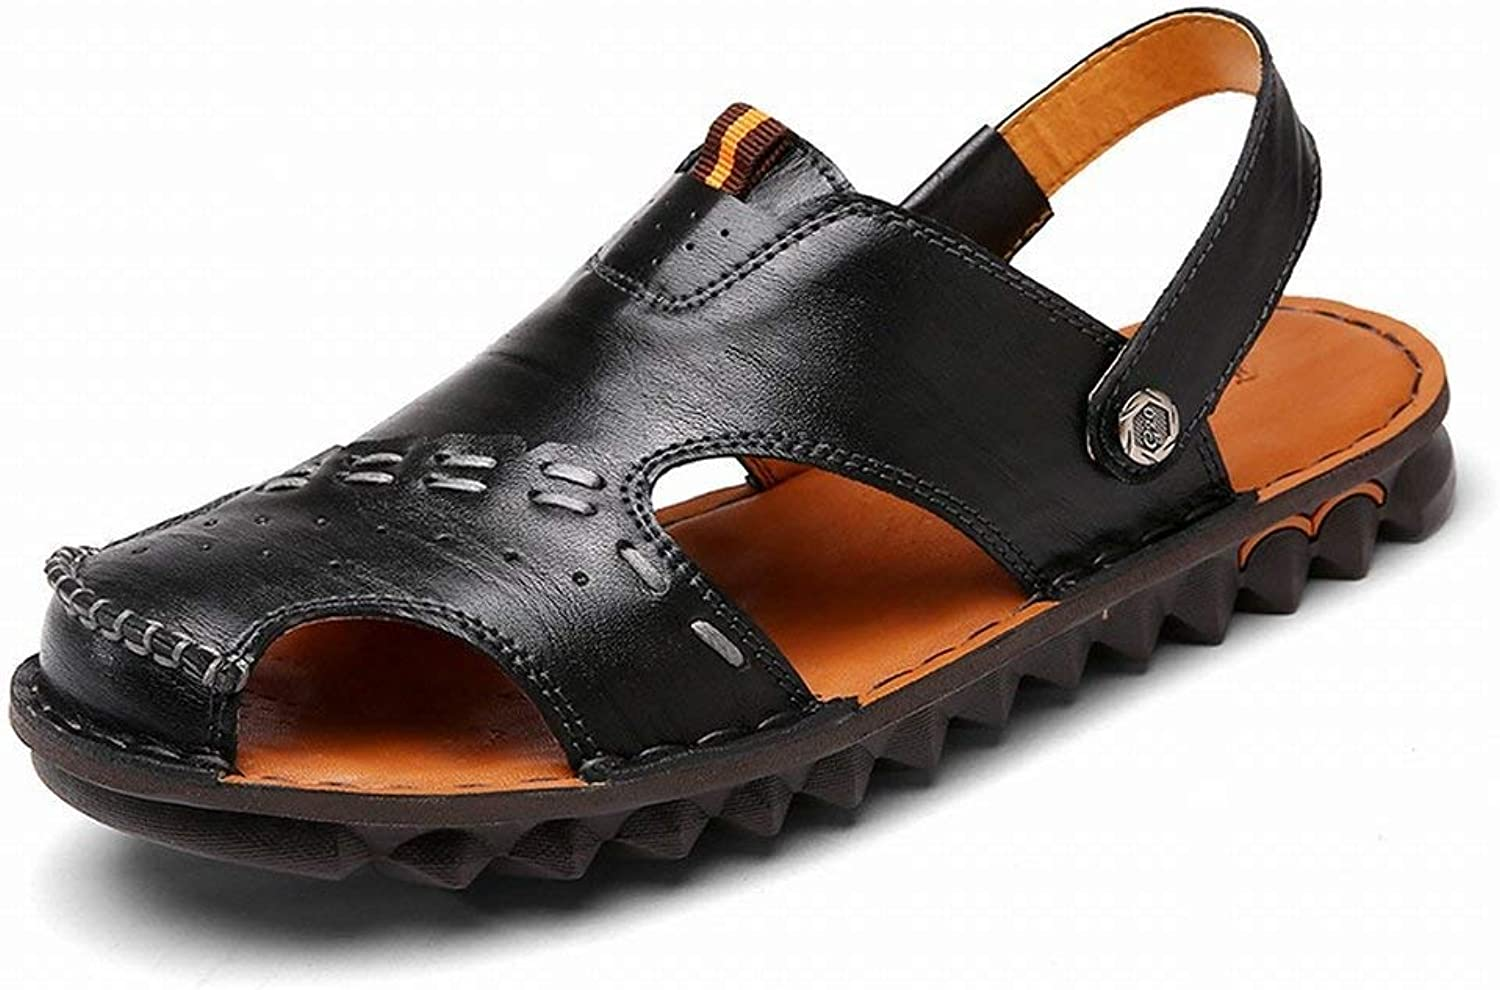 FuweiEncore Leather sandals for men Beach shoes Non-slip Lightweight wading shoes (color   Black, Size   44)